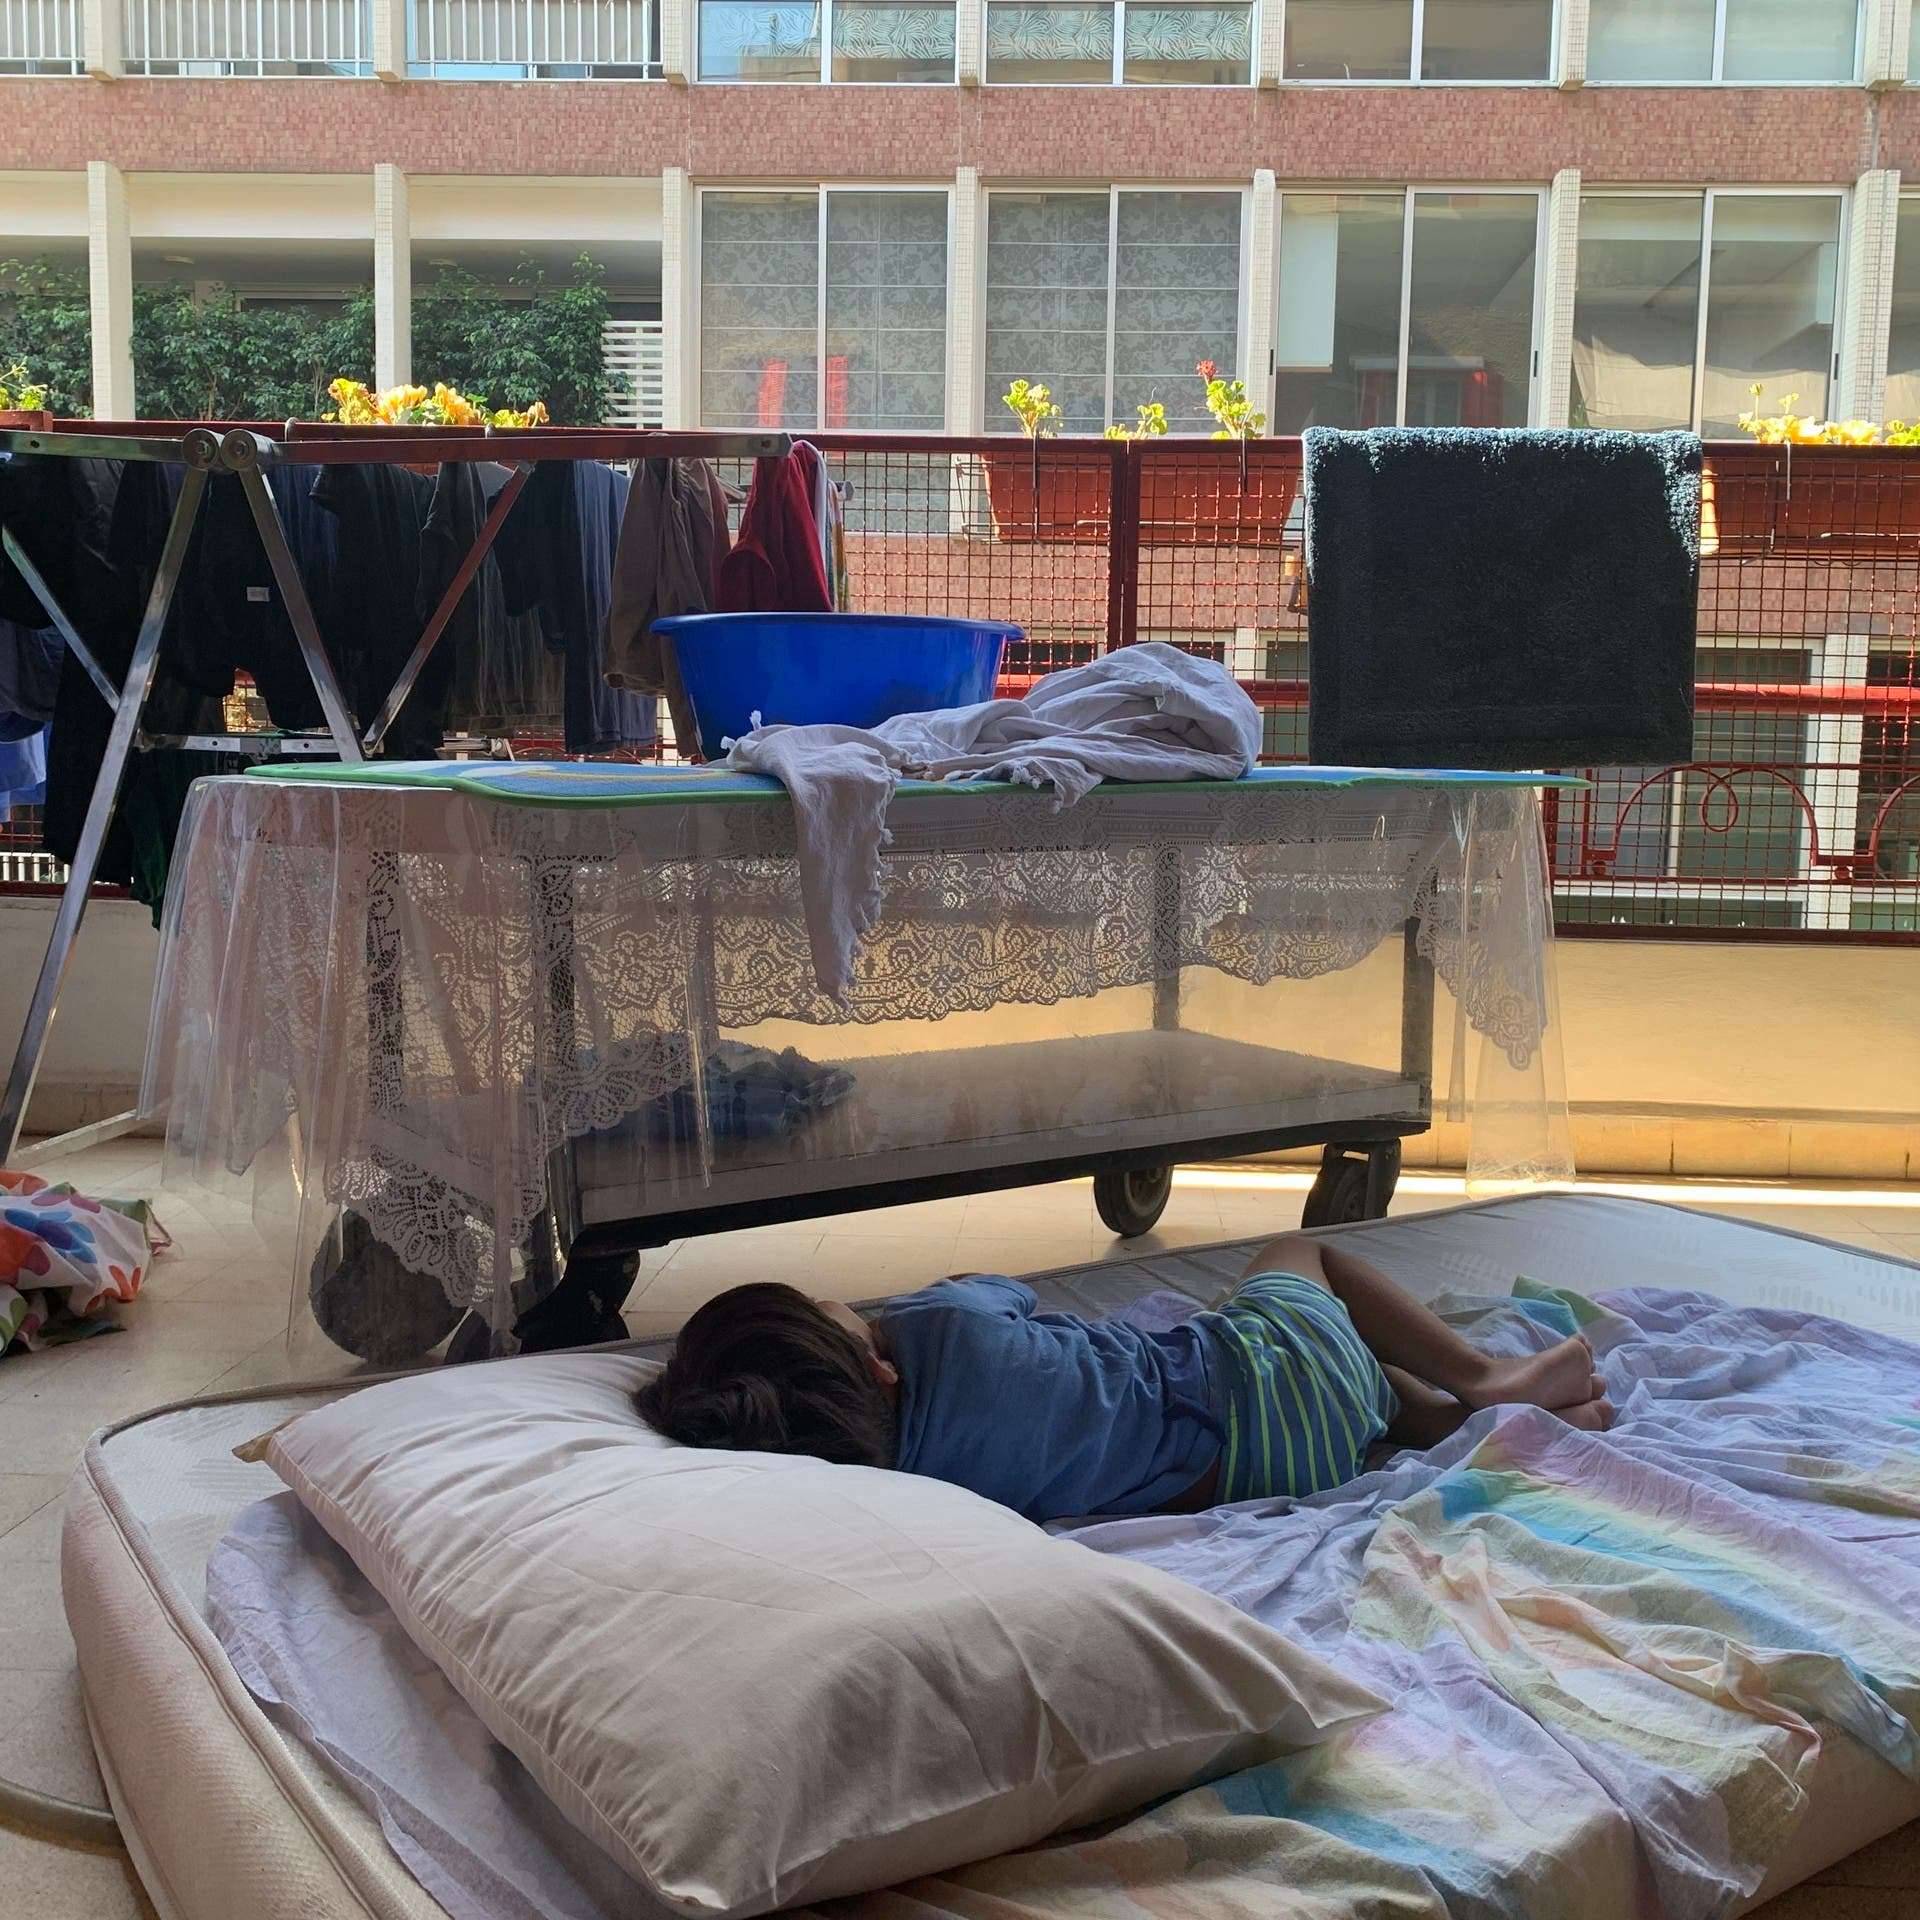 Power outages in Lebanon aggravate heatwave conditions, public health